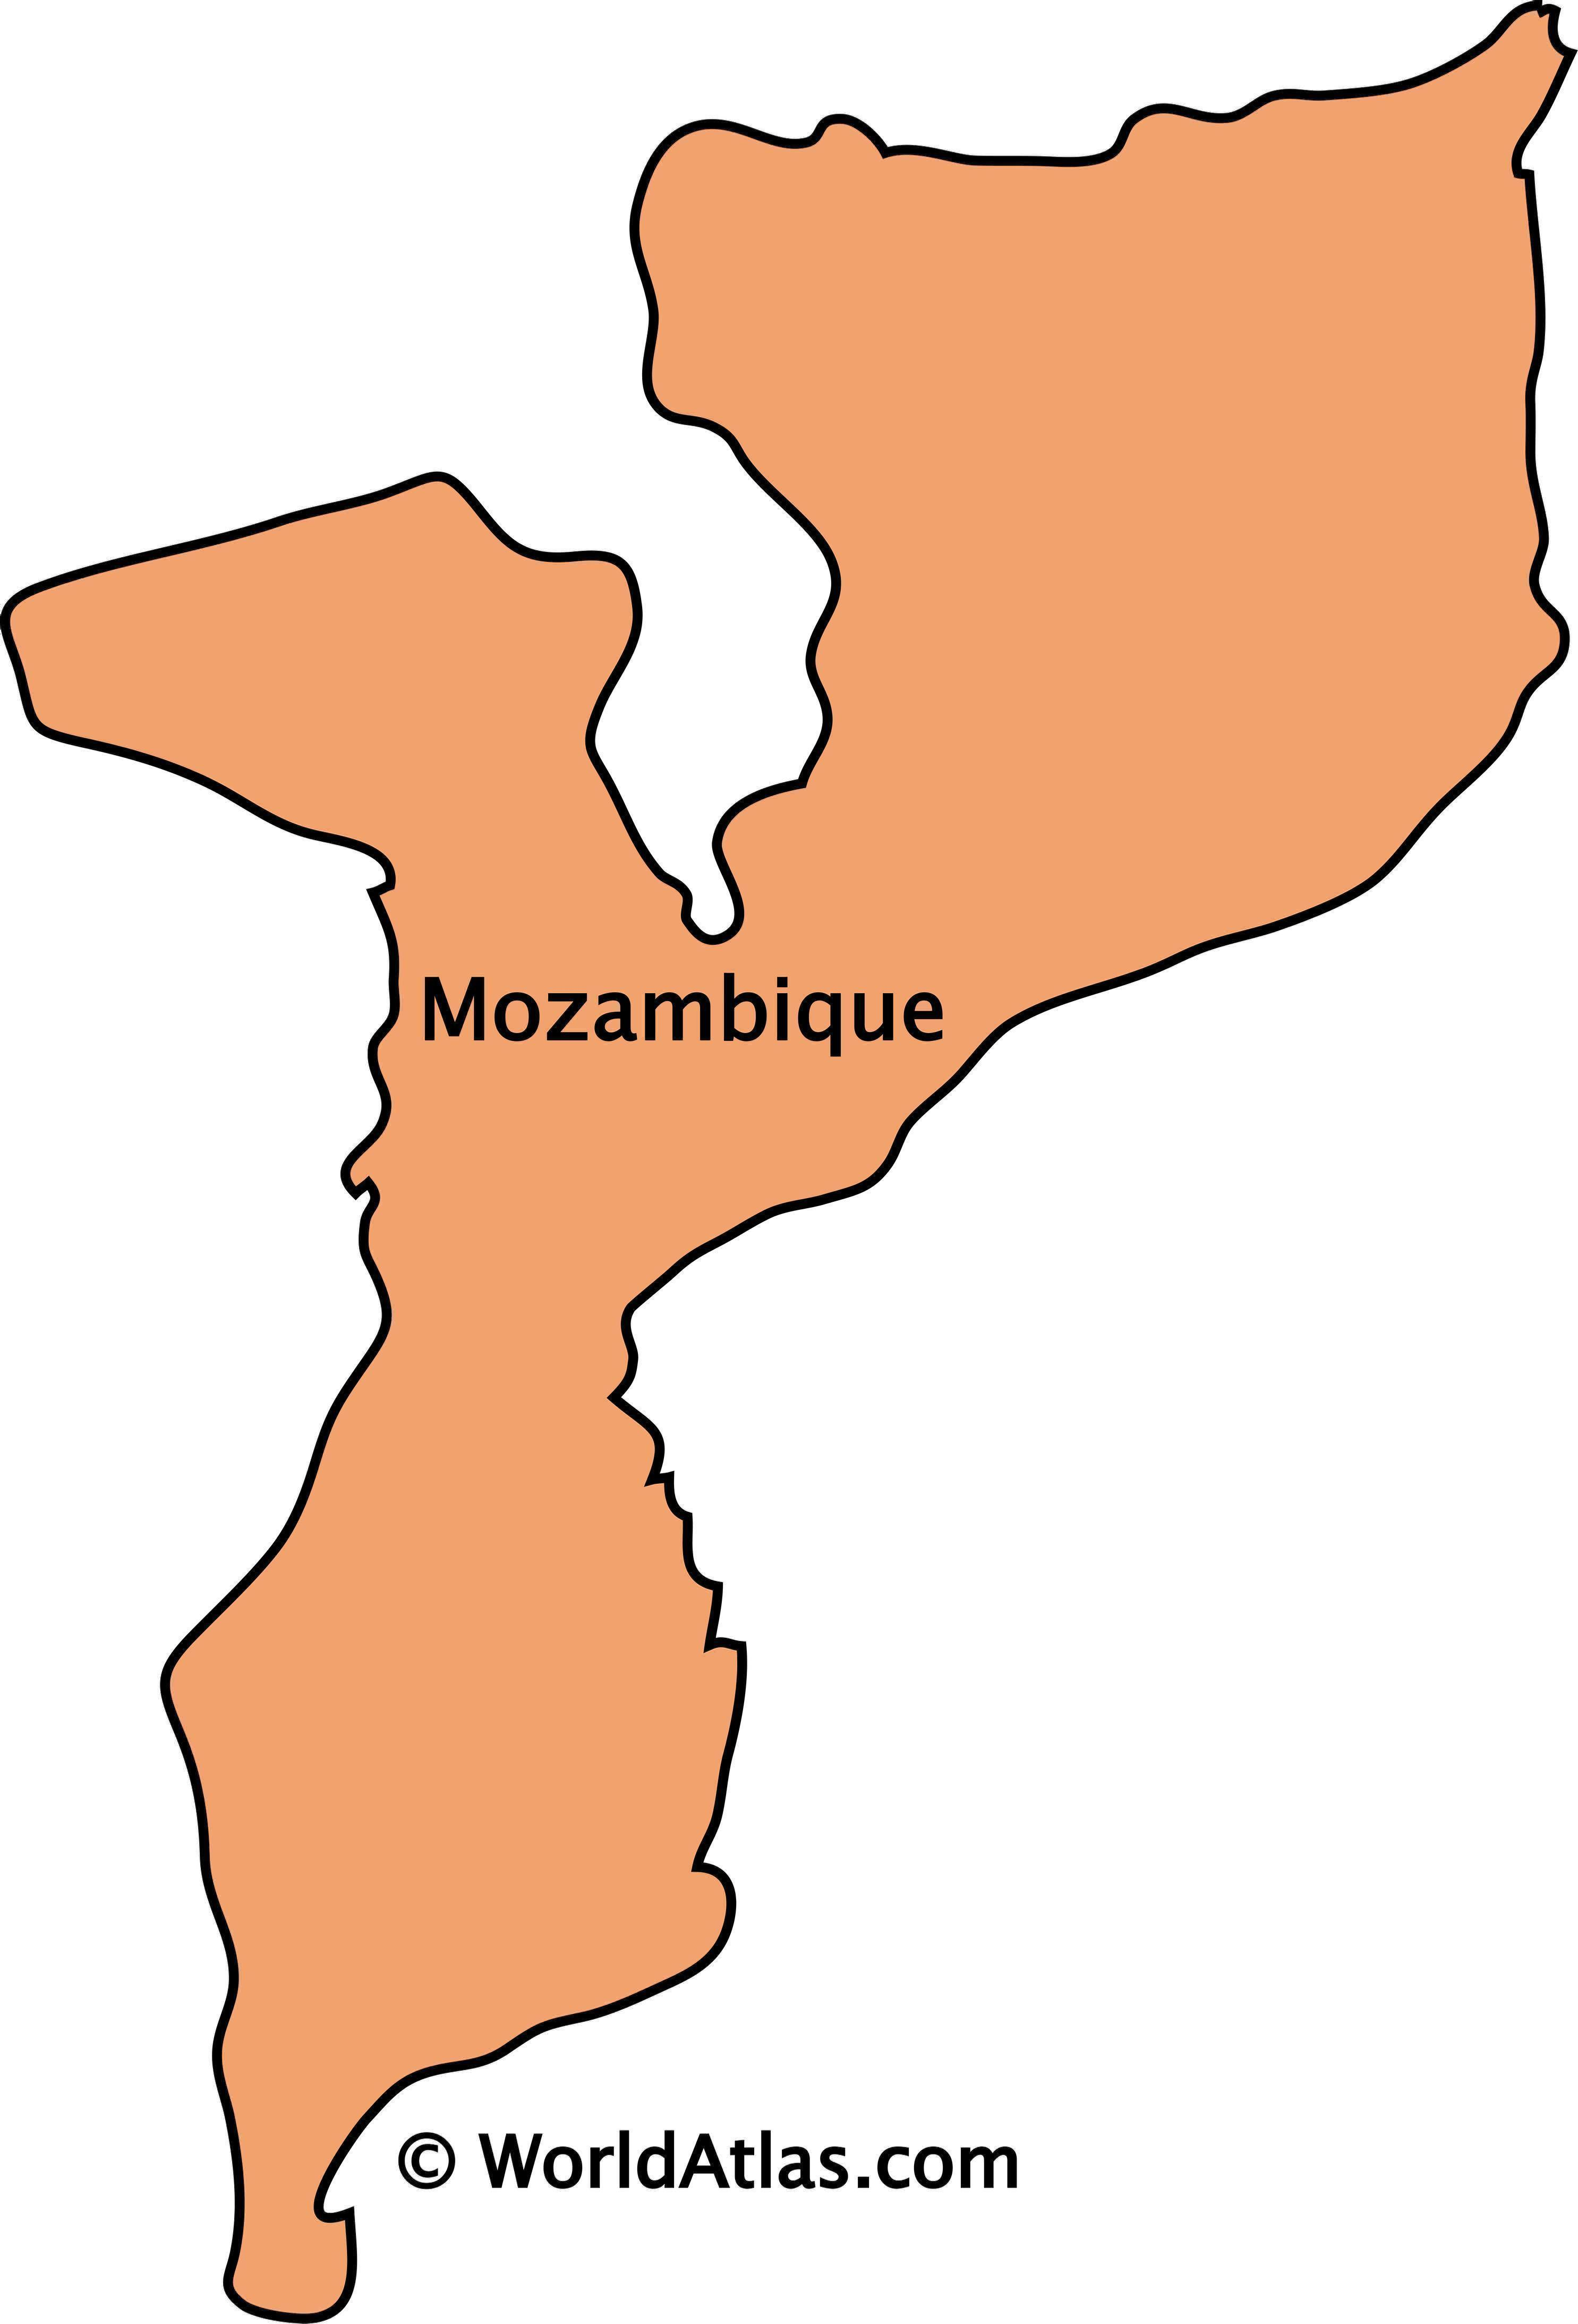 Outline Map of Mozambique